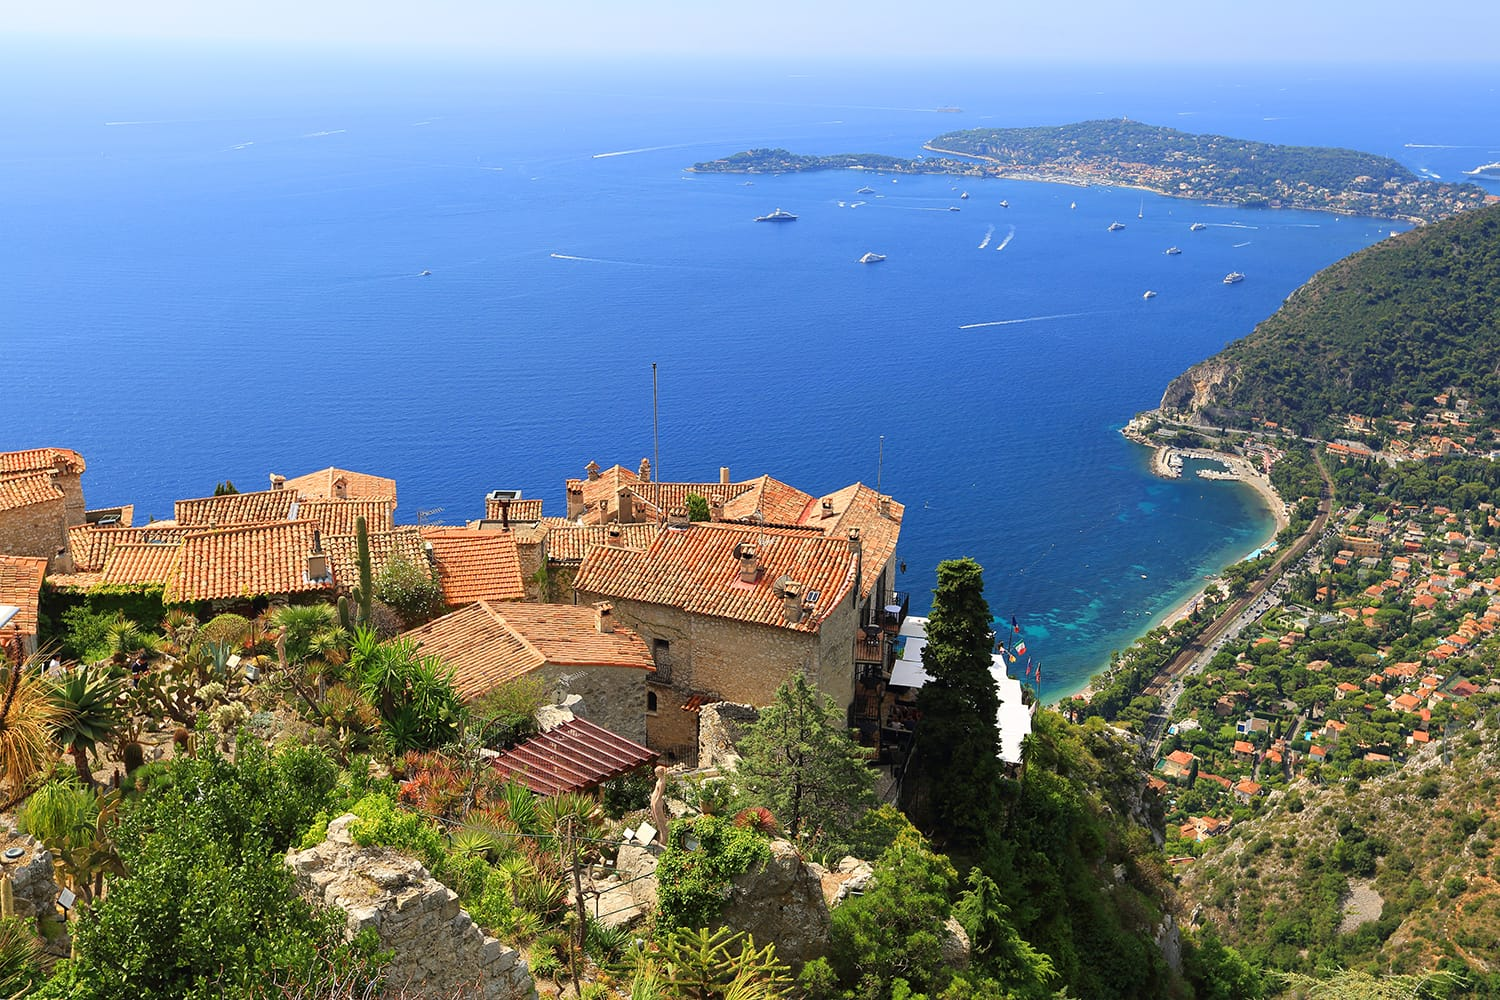 Eze village and Mediterranean Sea, French Riviera, France